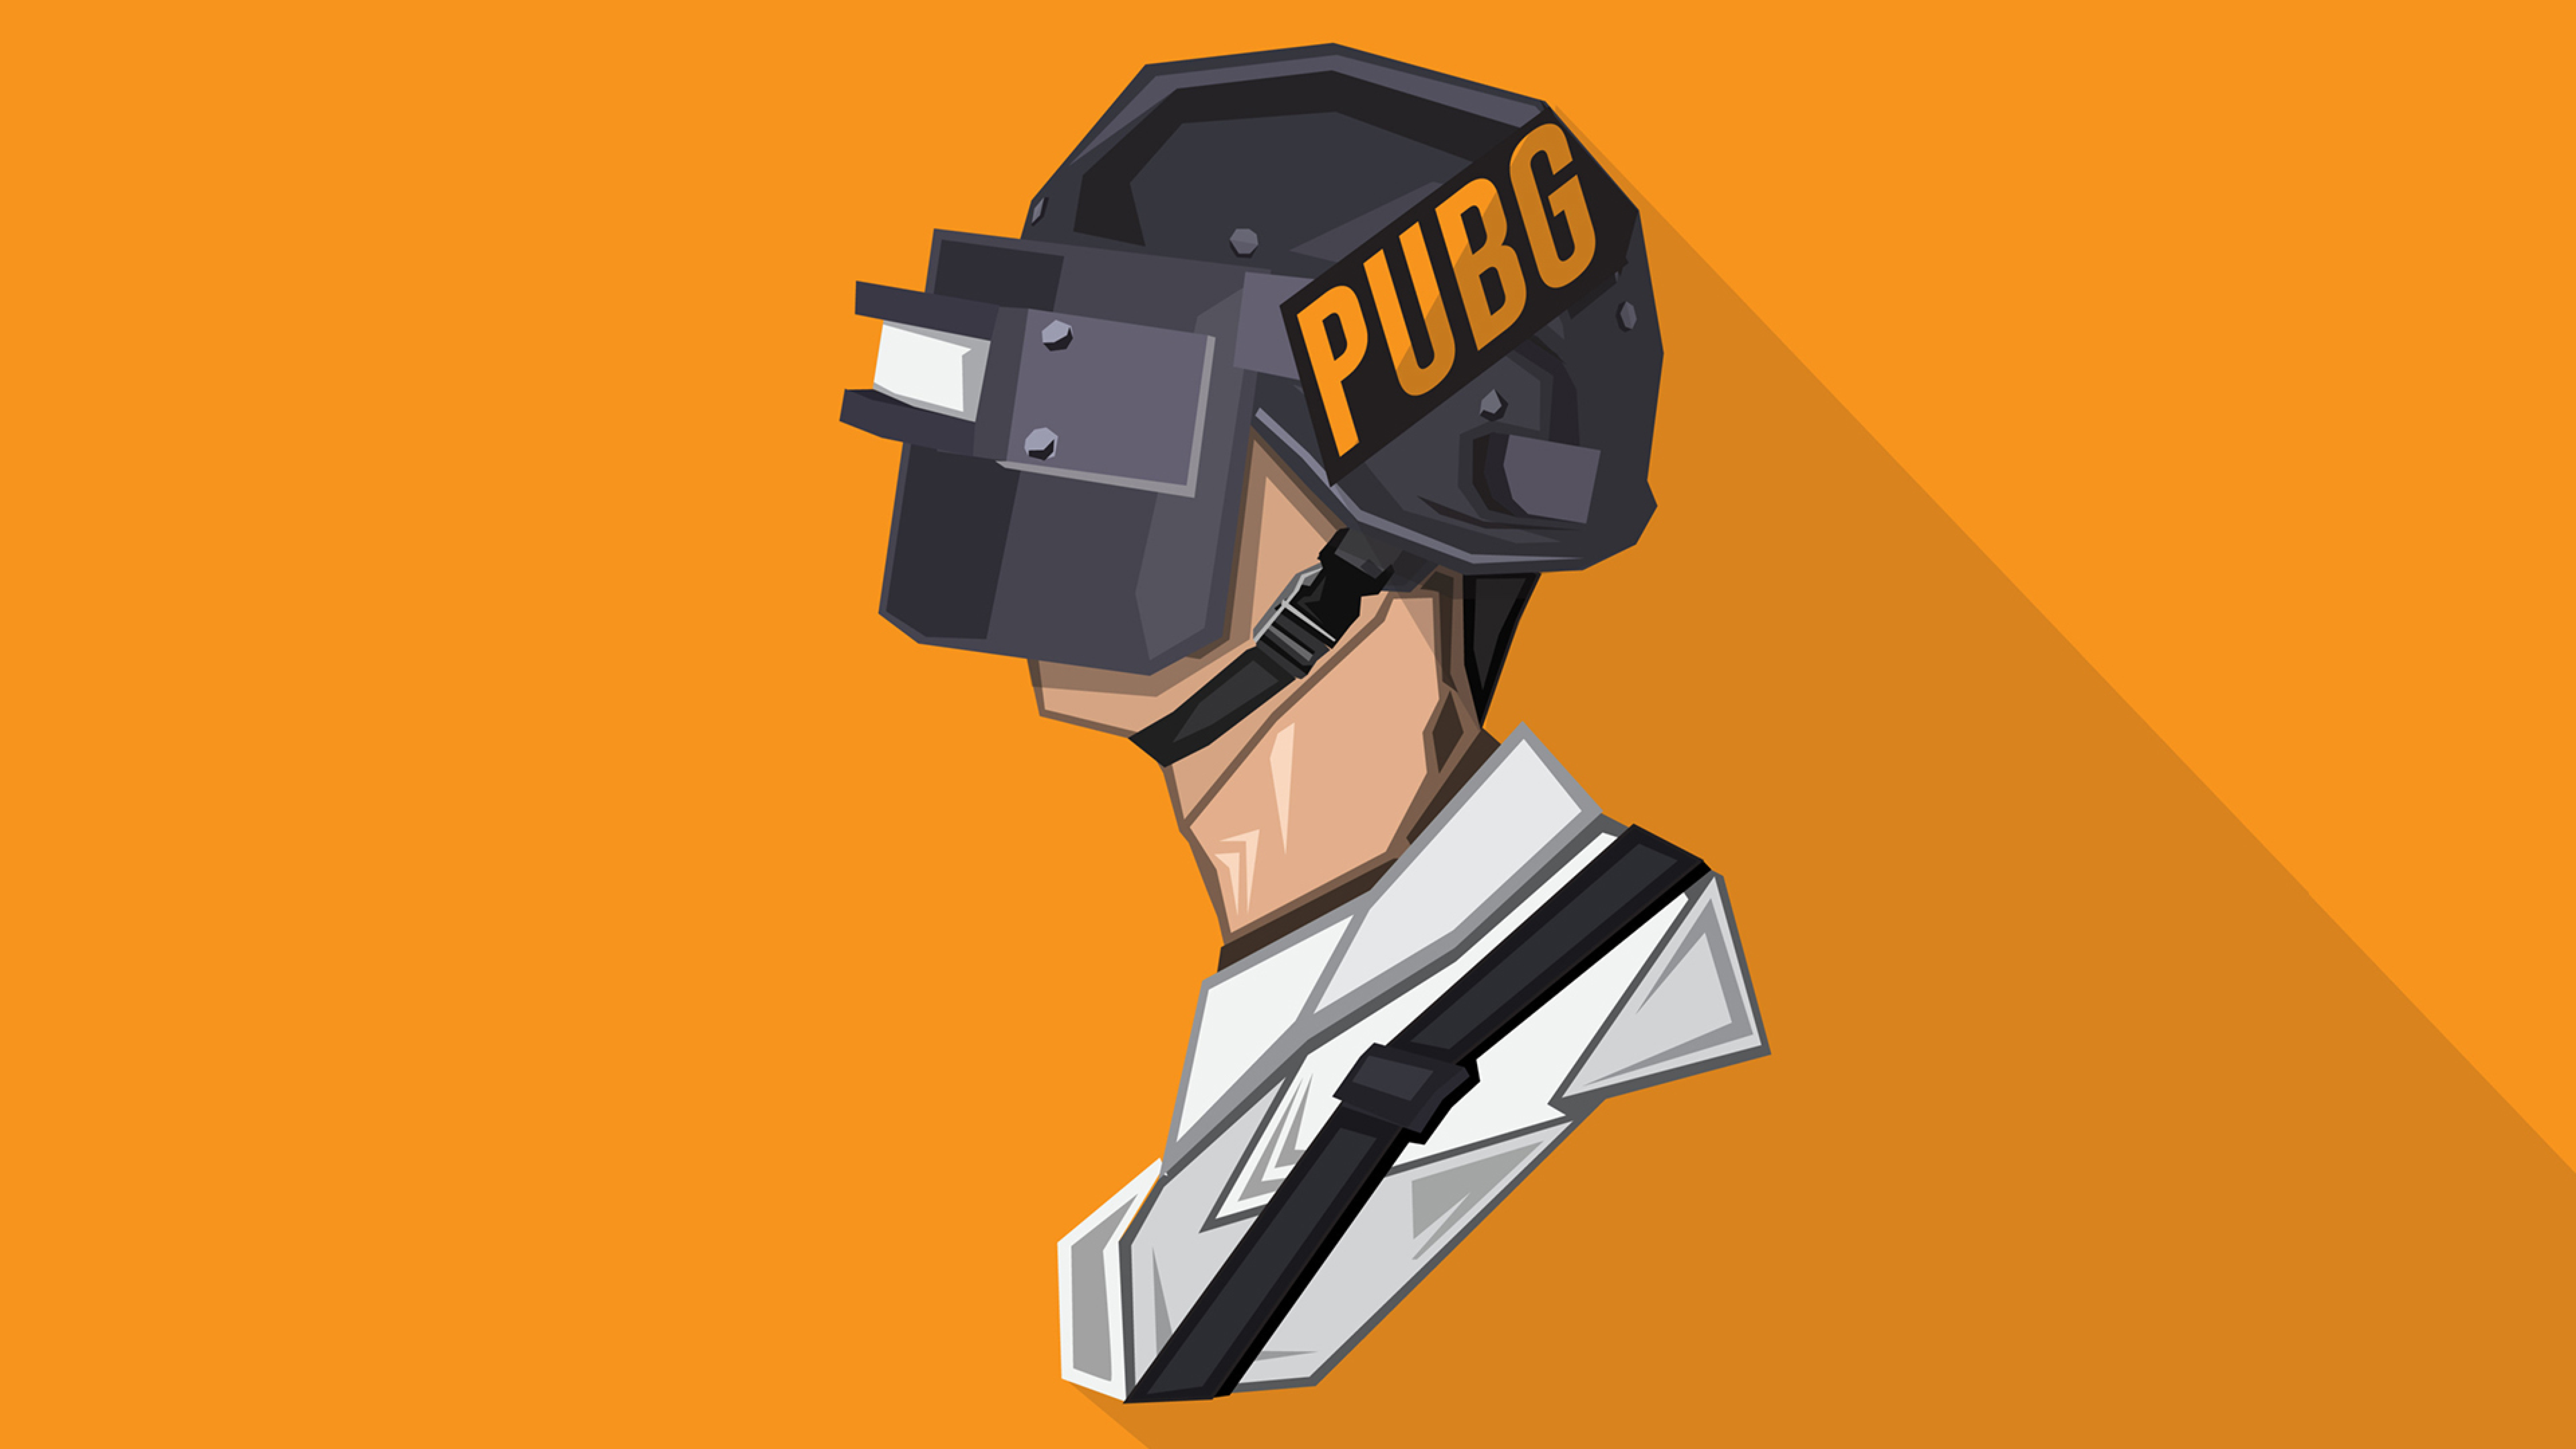 Pubg Cartoon Wallpaper 4k: Download Pubg Minimalist Pophead 7680x4320 Resolution